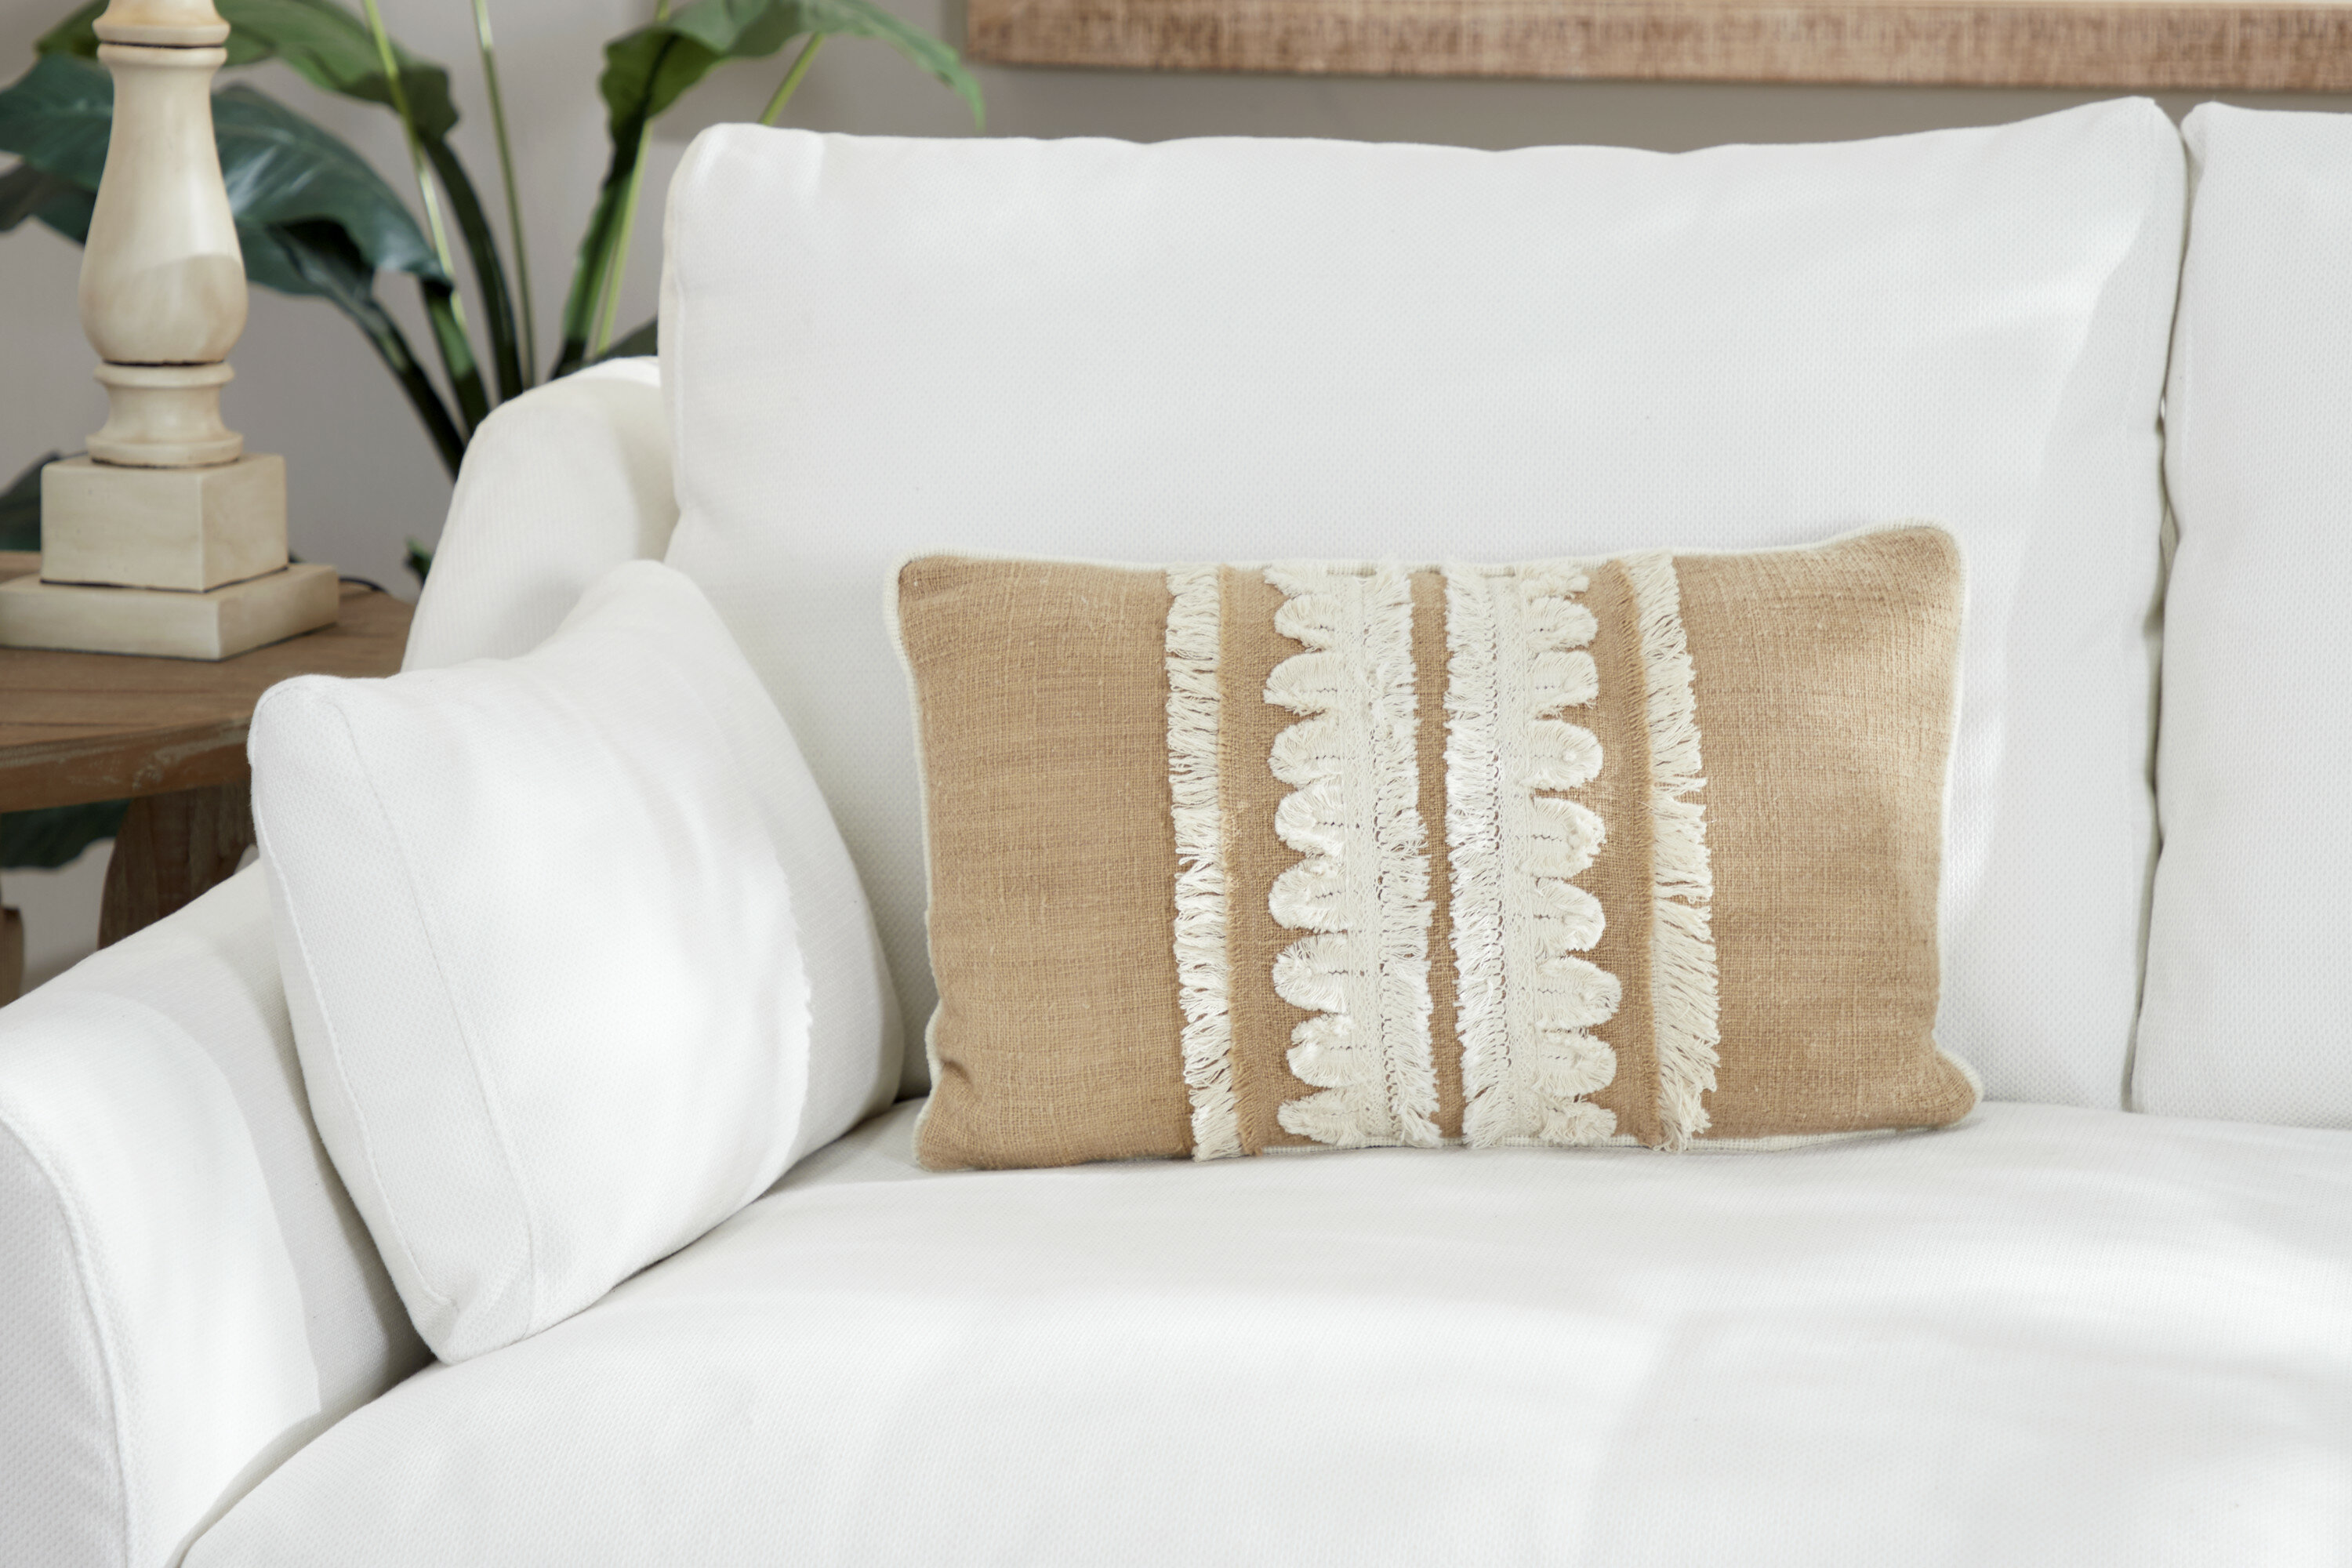 Bungalow Rose Capirano Embroidery And Fringe Cotton Throw Pillow Wayfair